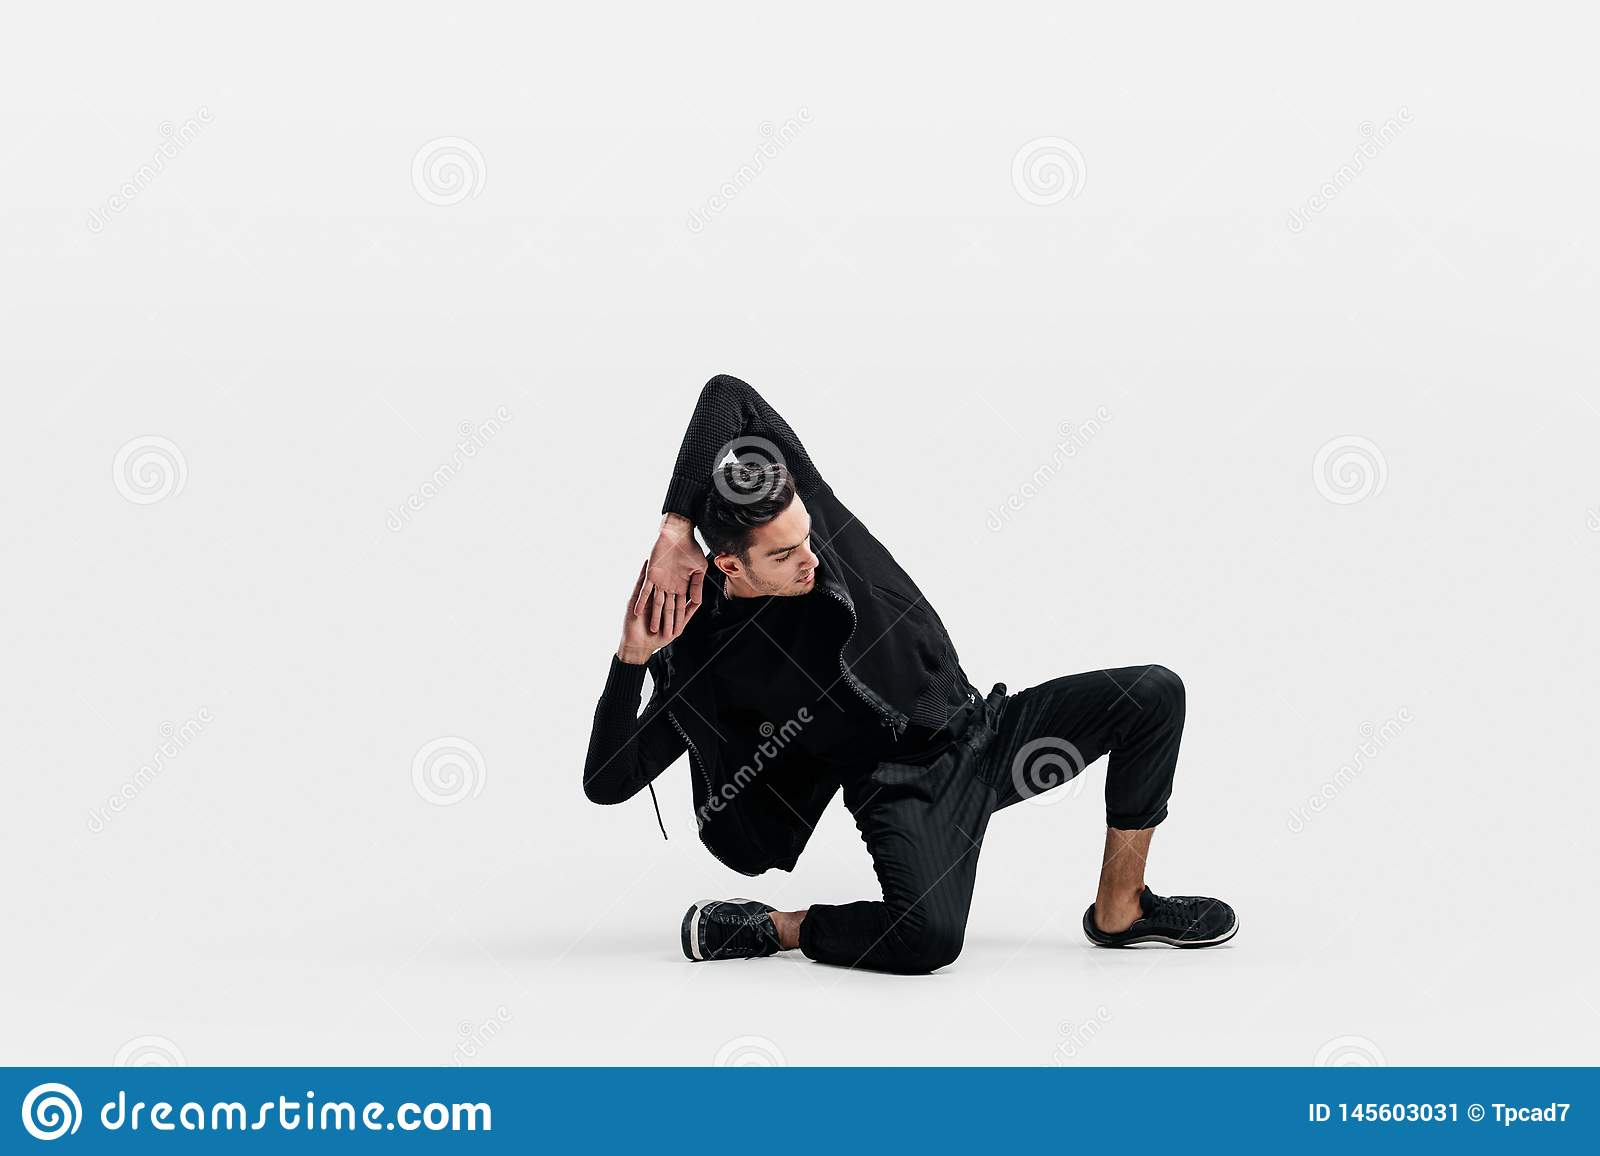 Handsome young man wearing a black sweatshirt and black pants is dancing breakdance doing dancing movements on the floor